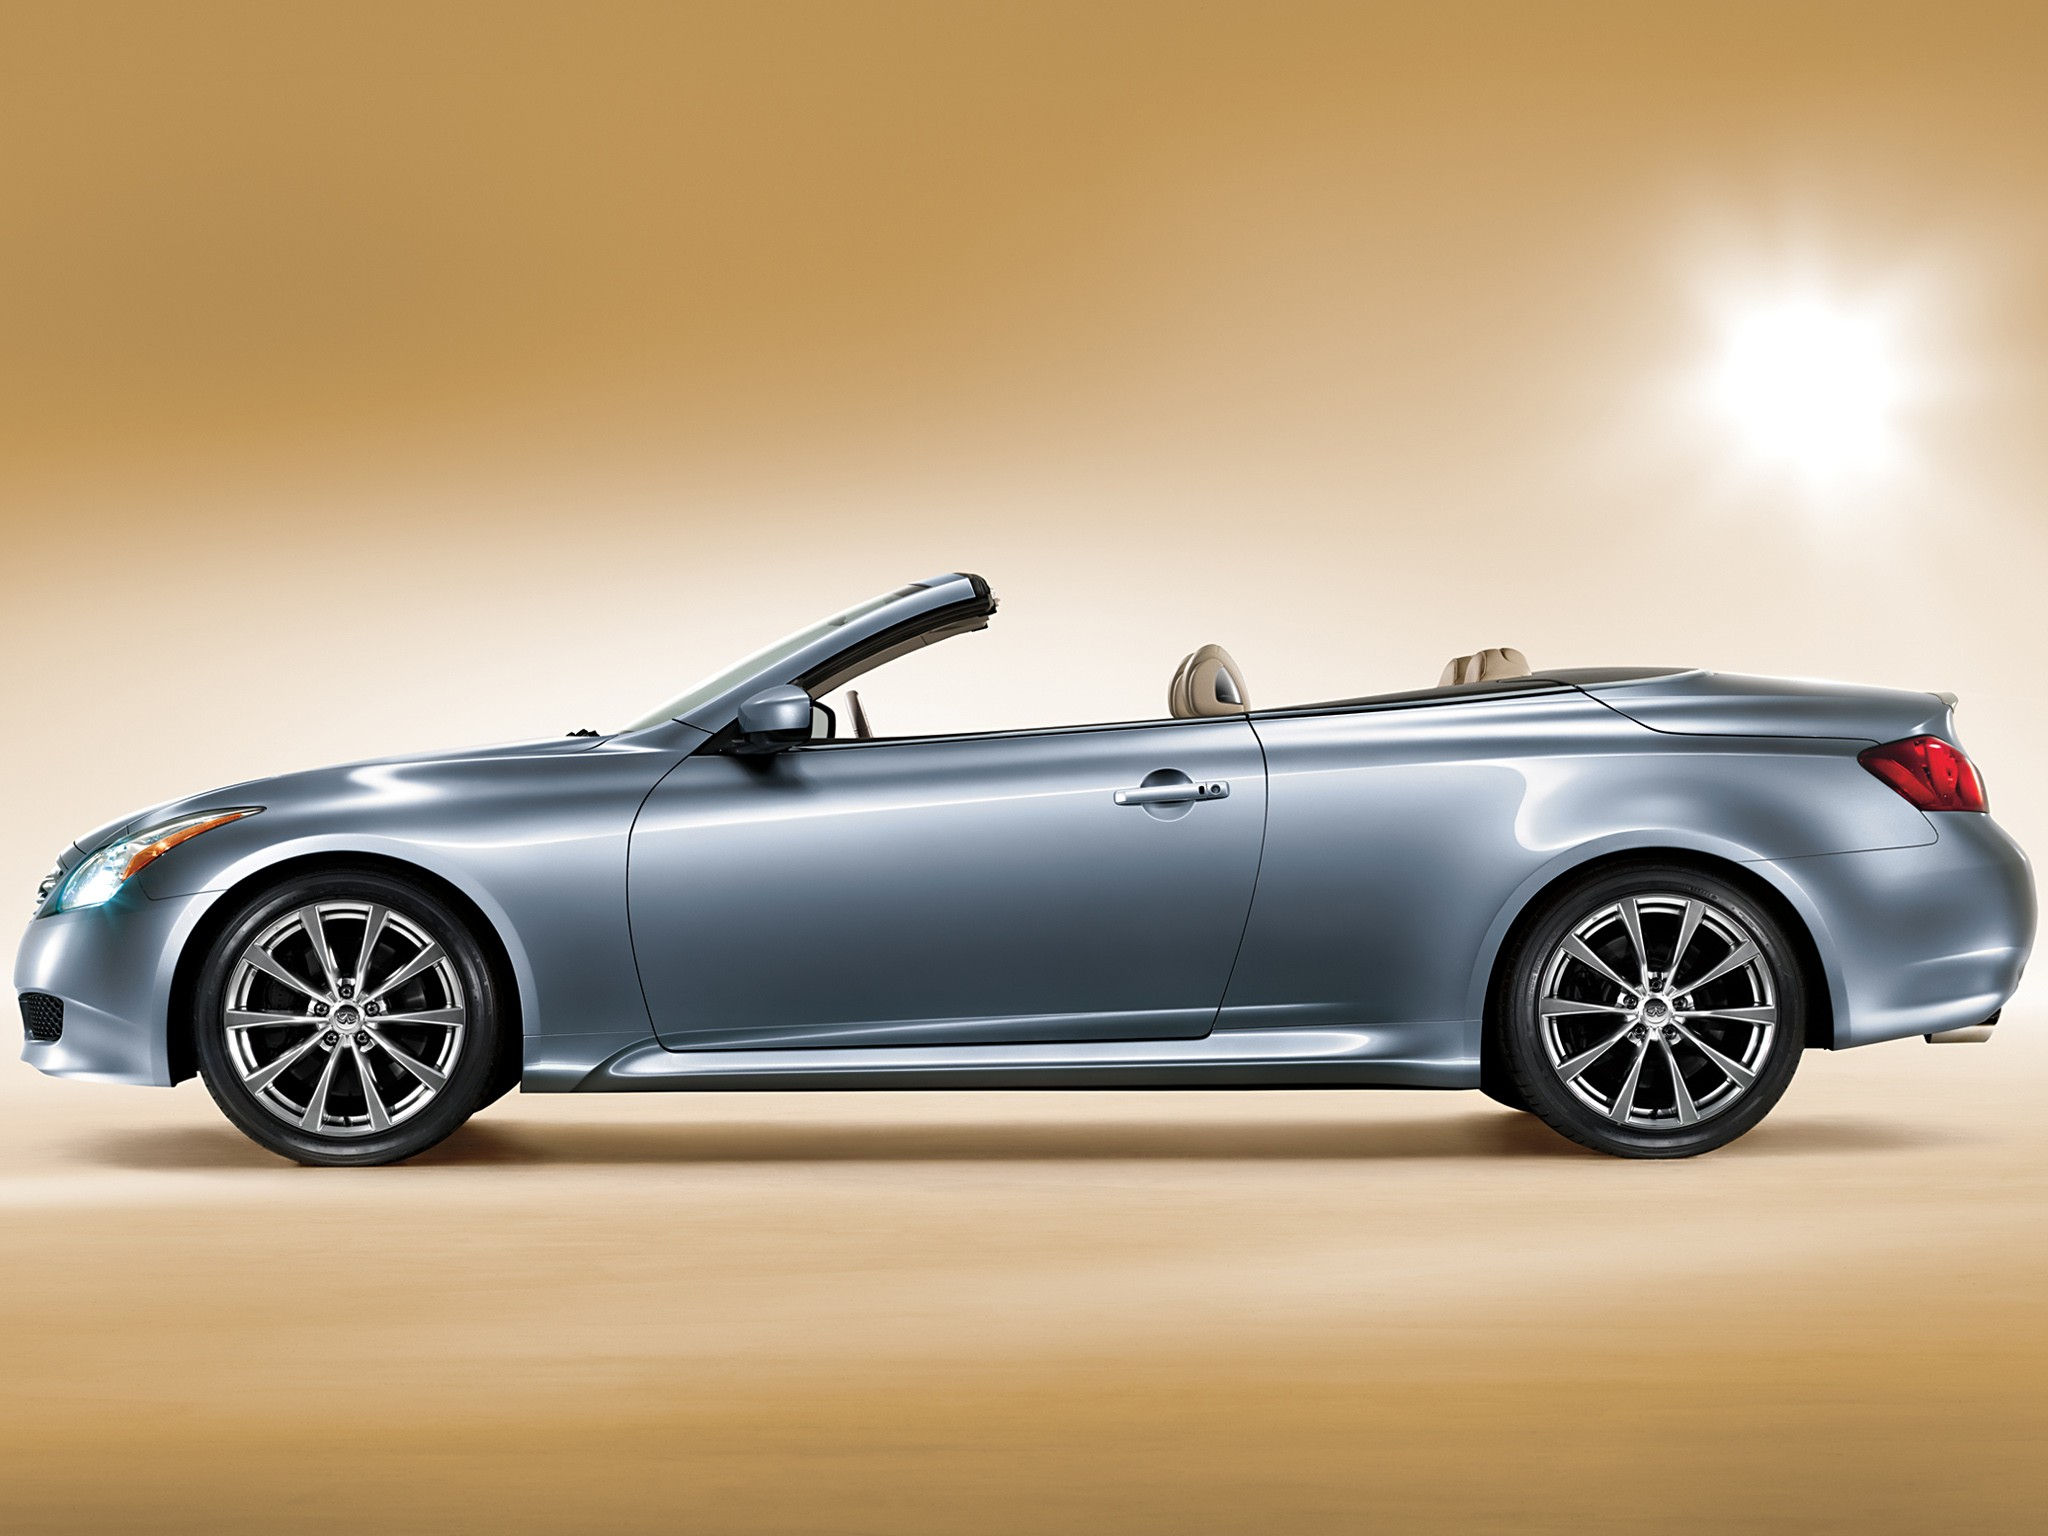 infiniti g37 convertible by - photo #26